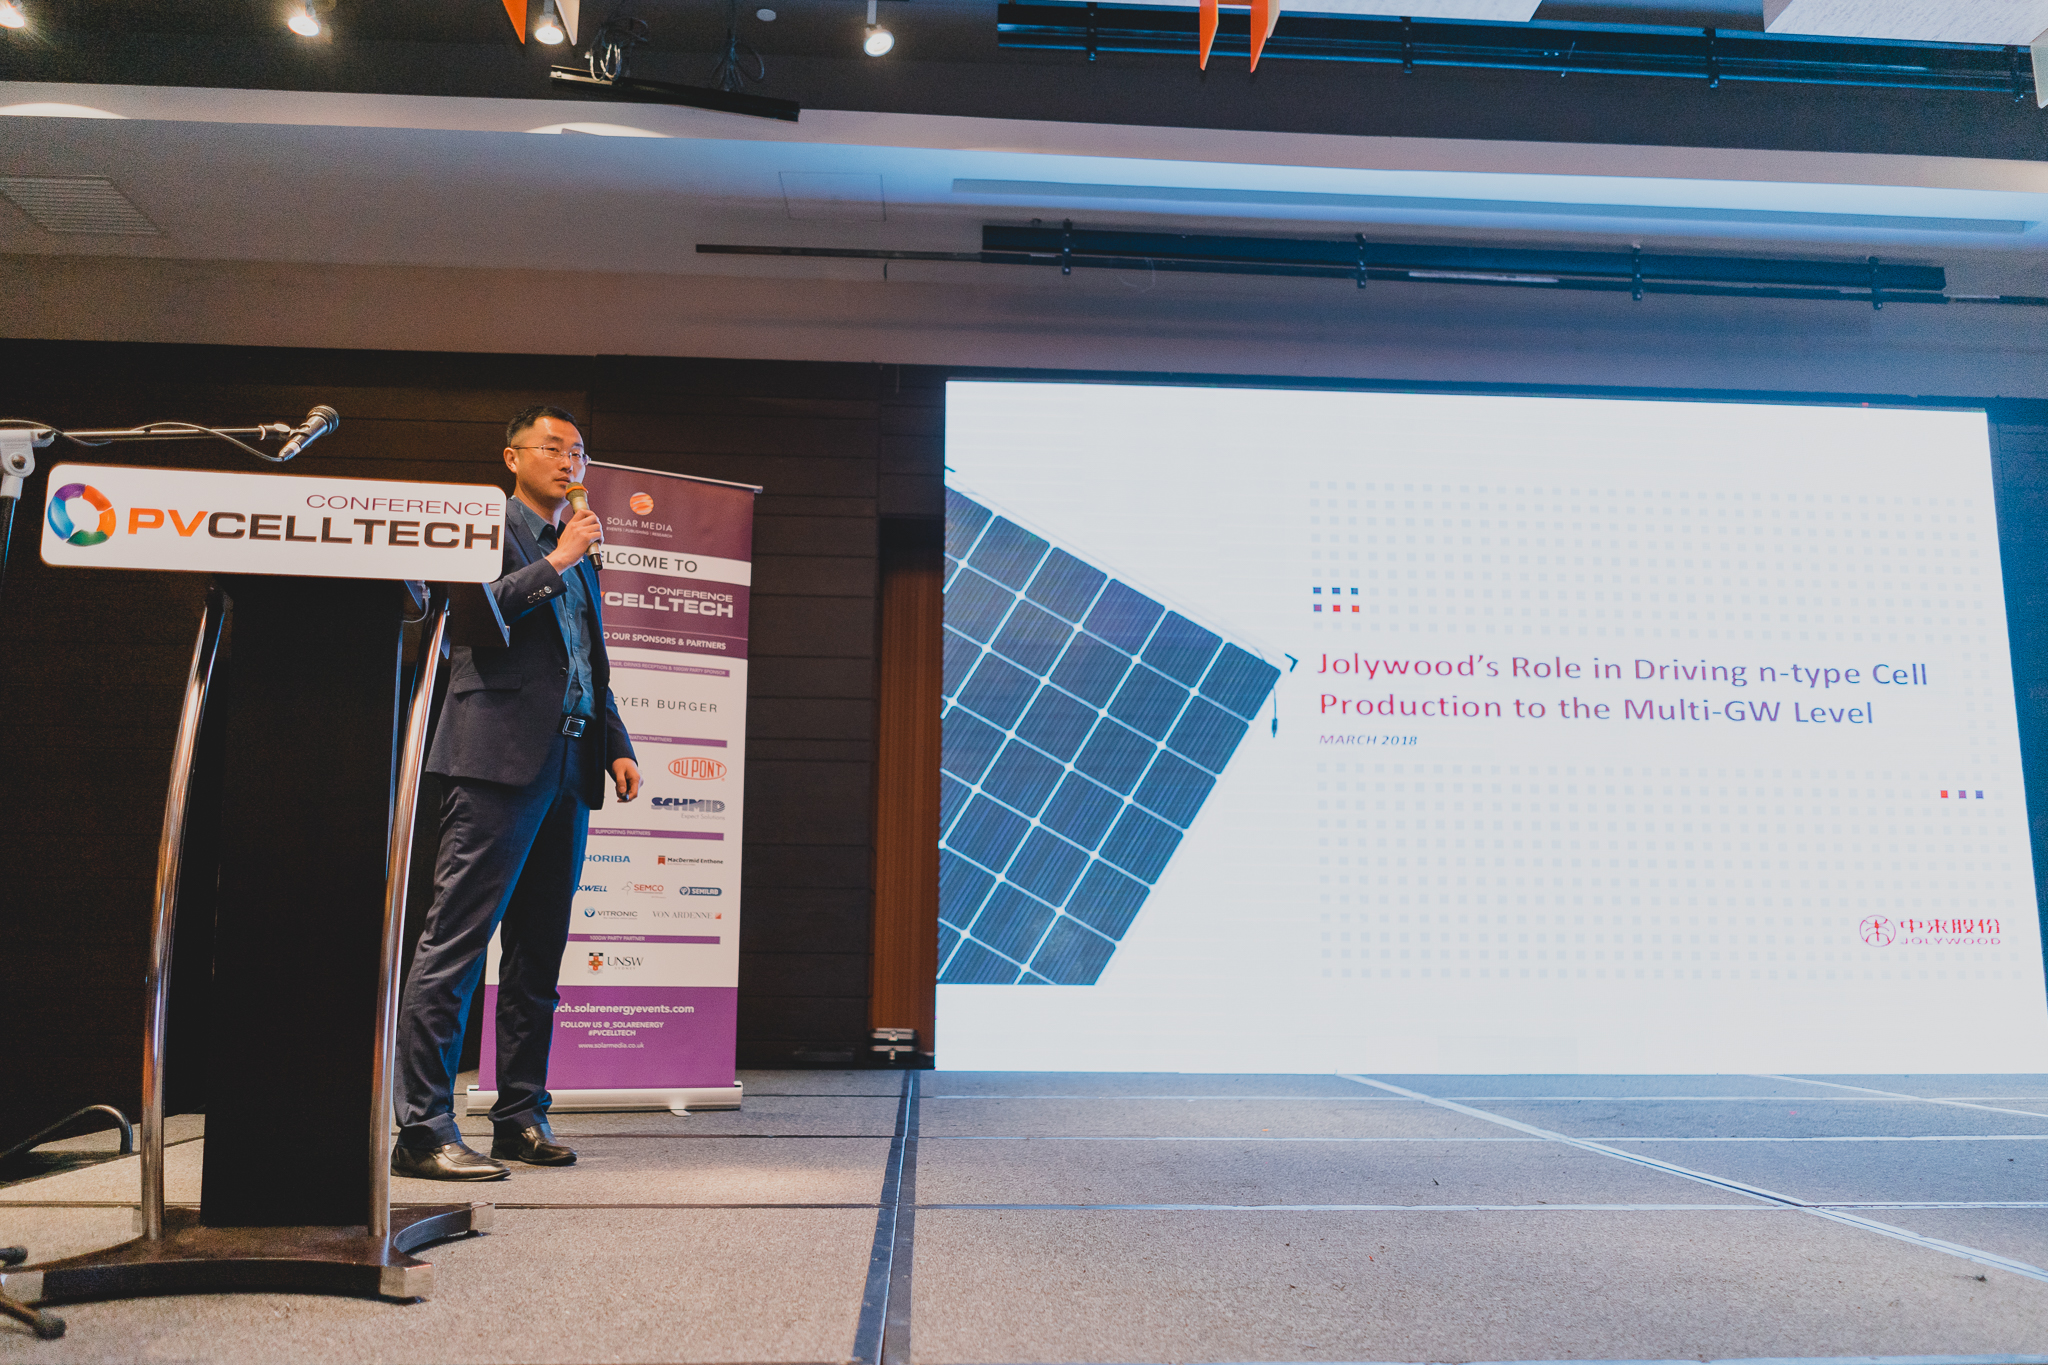 This article reveals the 30 invited speakers confirmed for PV CellTech 2019, with just a couple more to be added between now and the event on 12-13 March 2019 in Penang.